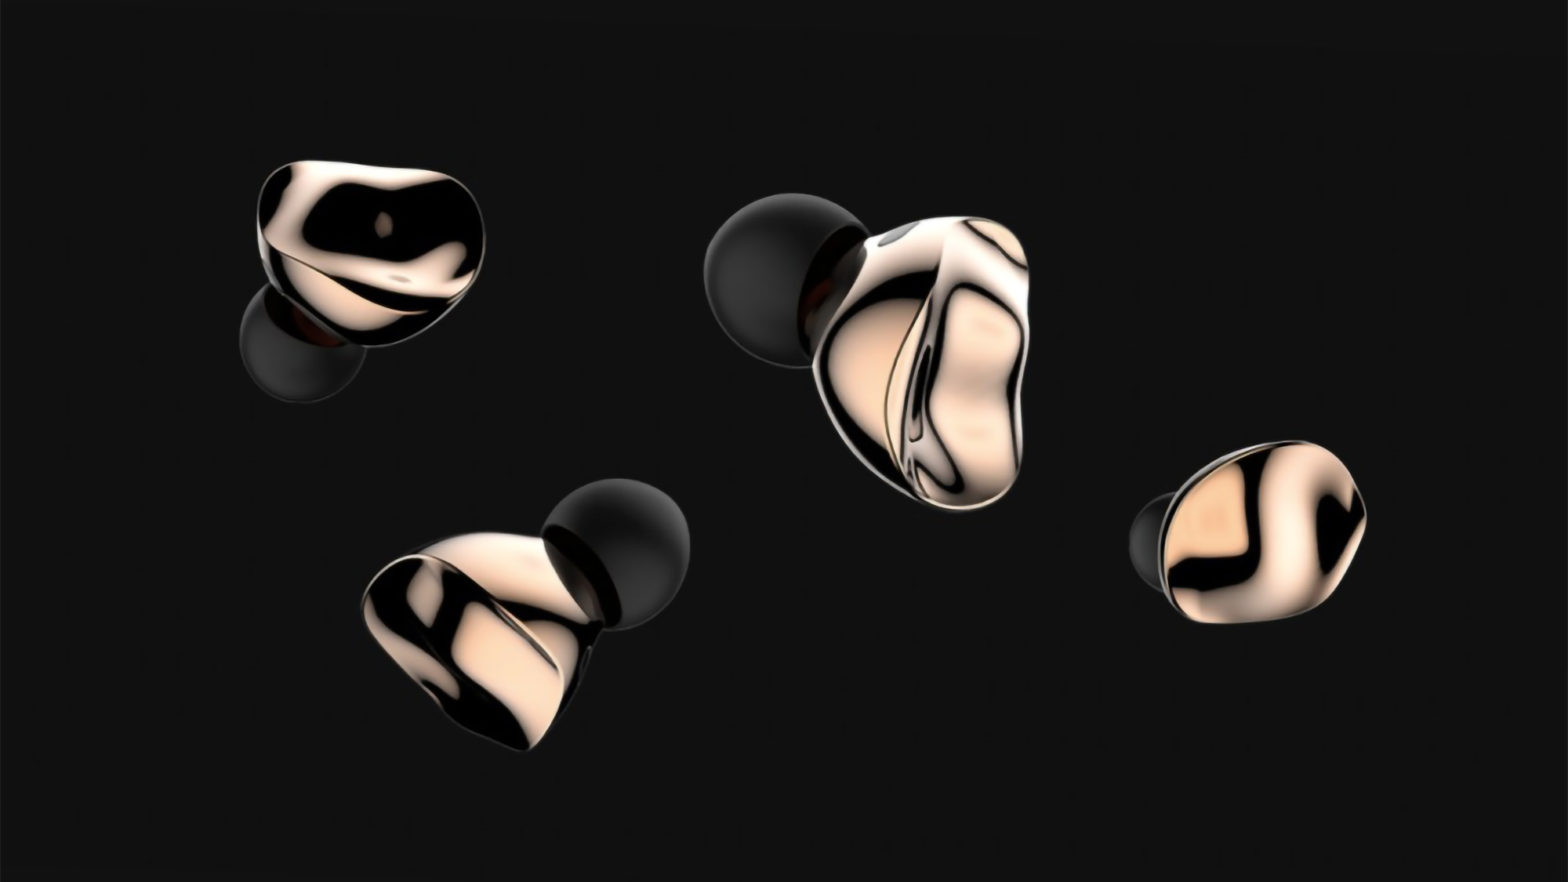 Pearl Audio AI-powered True Wireless Earbuds